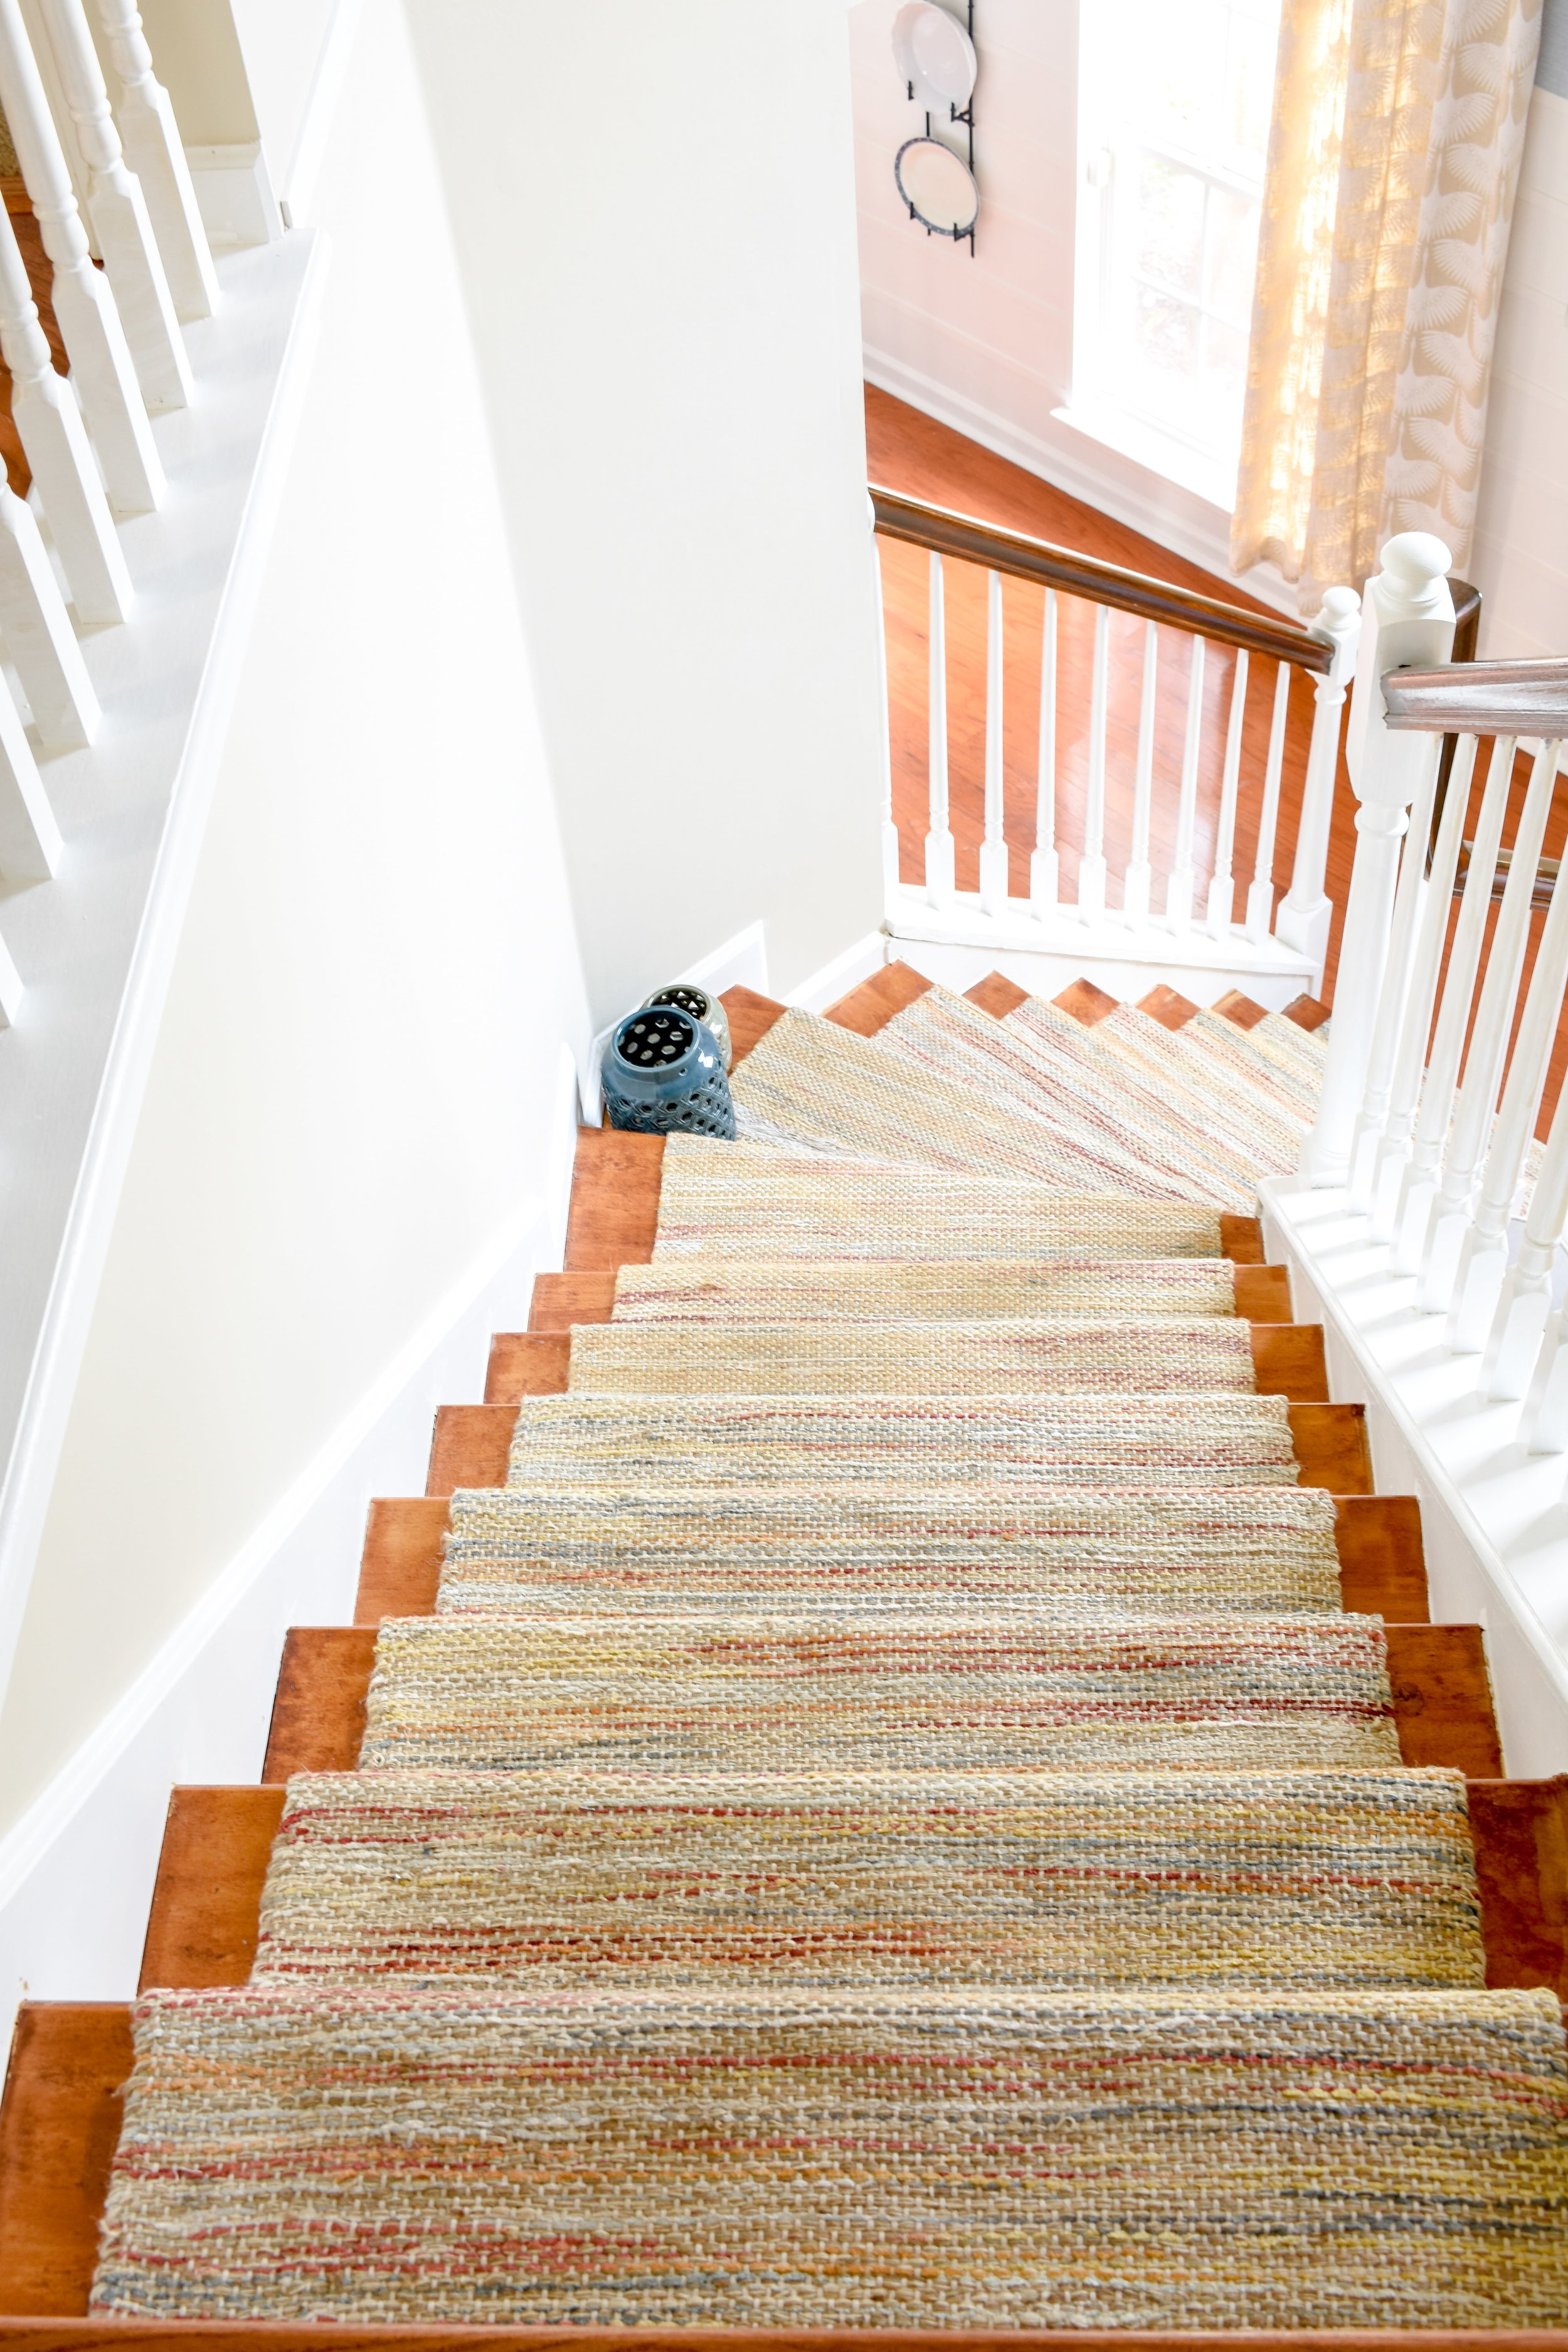 Our Suburban Home: Entryway updates include adding new hardwood on the stairs to replace the old carpet. #newhomeideas #suburbanhomes